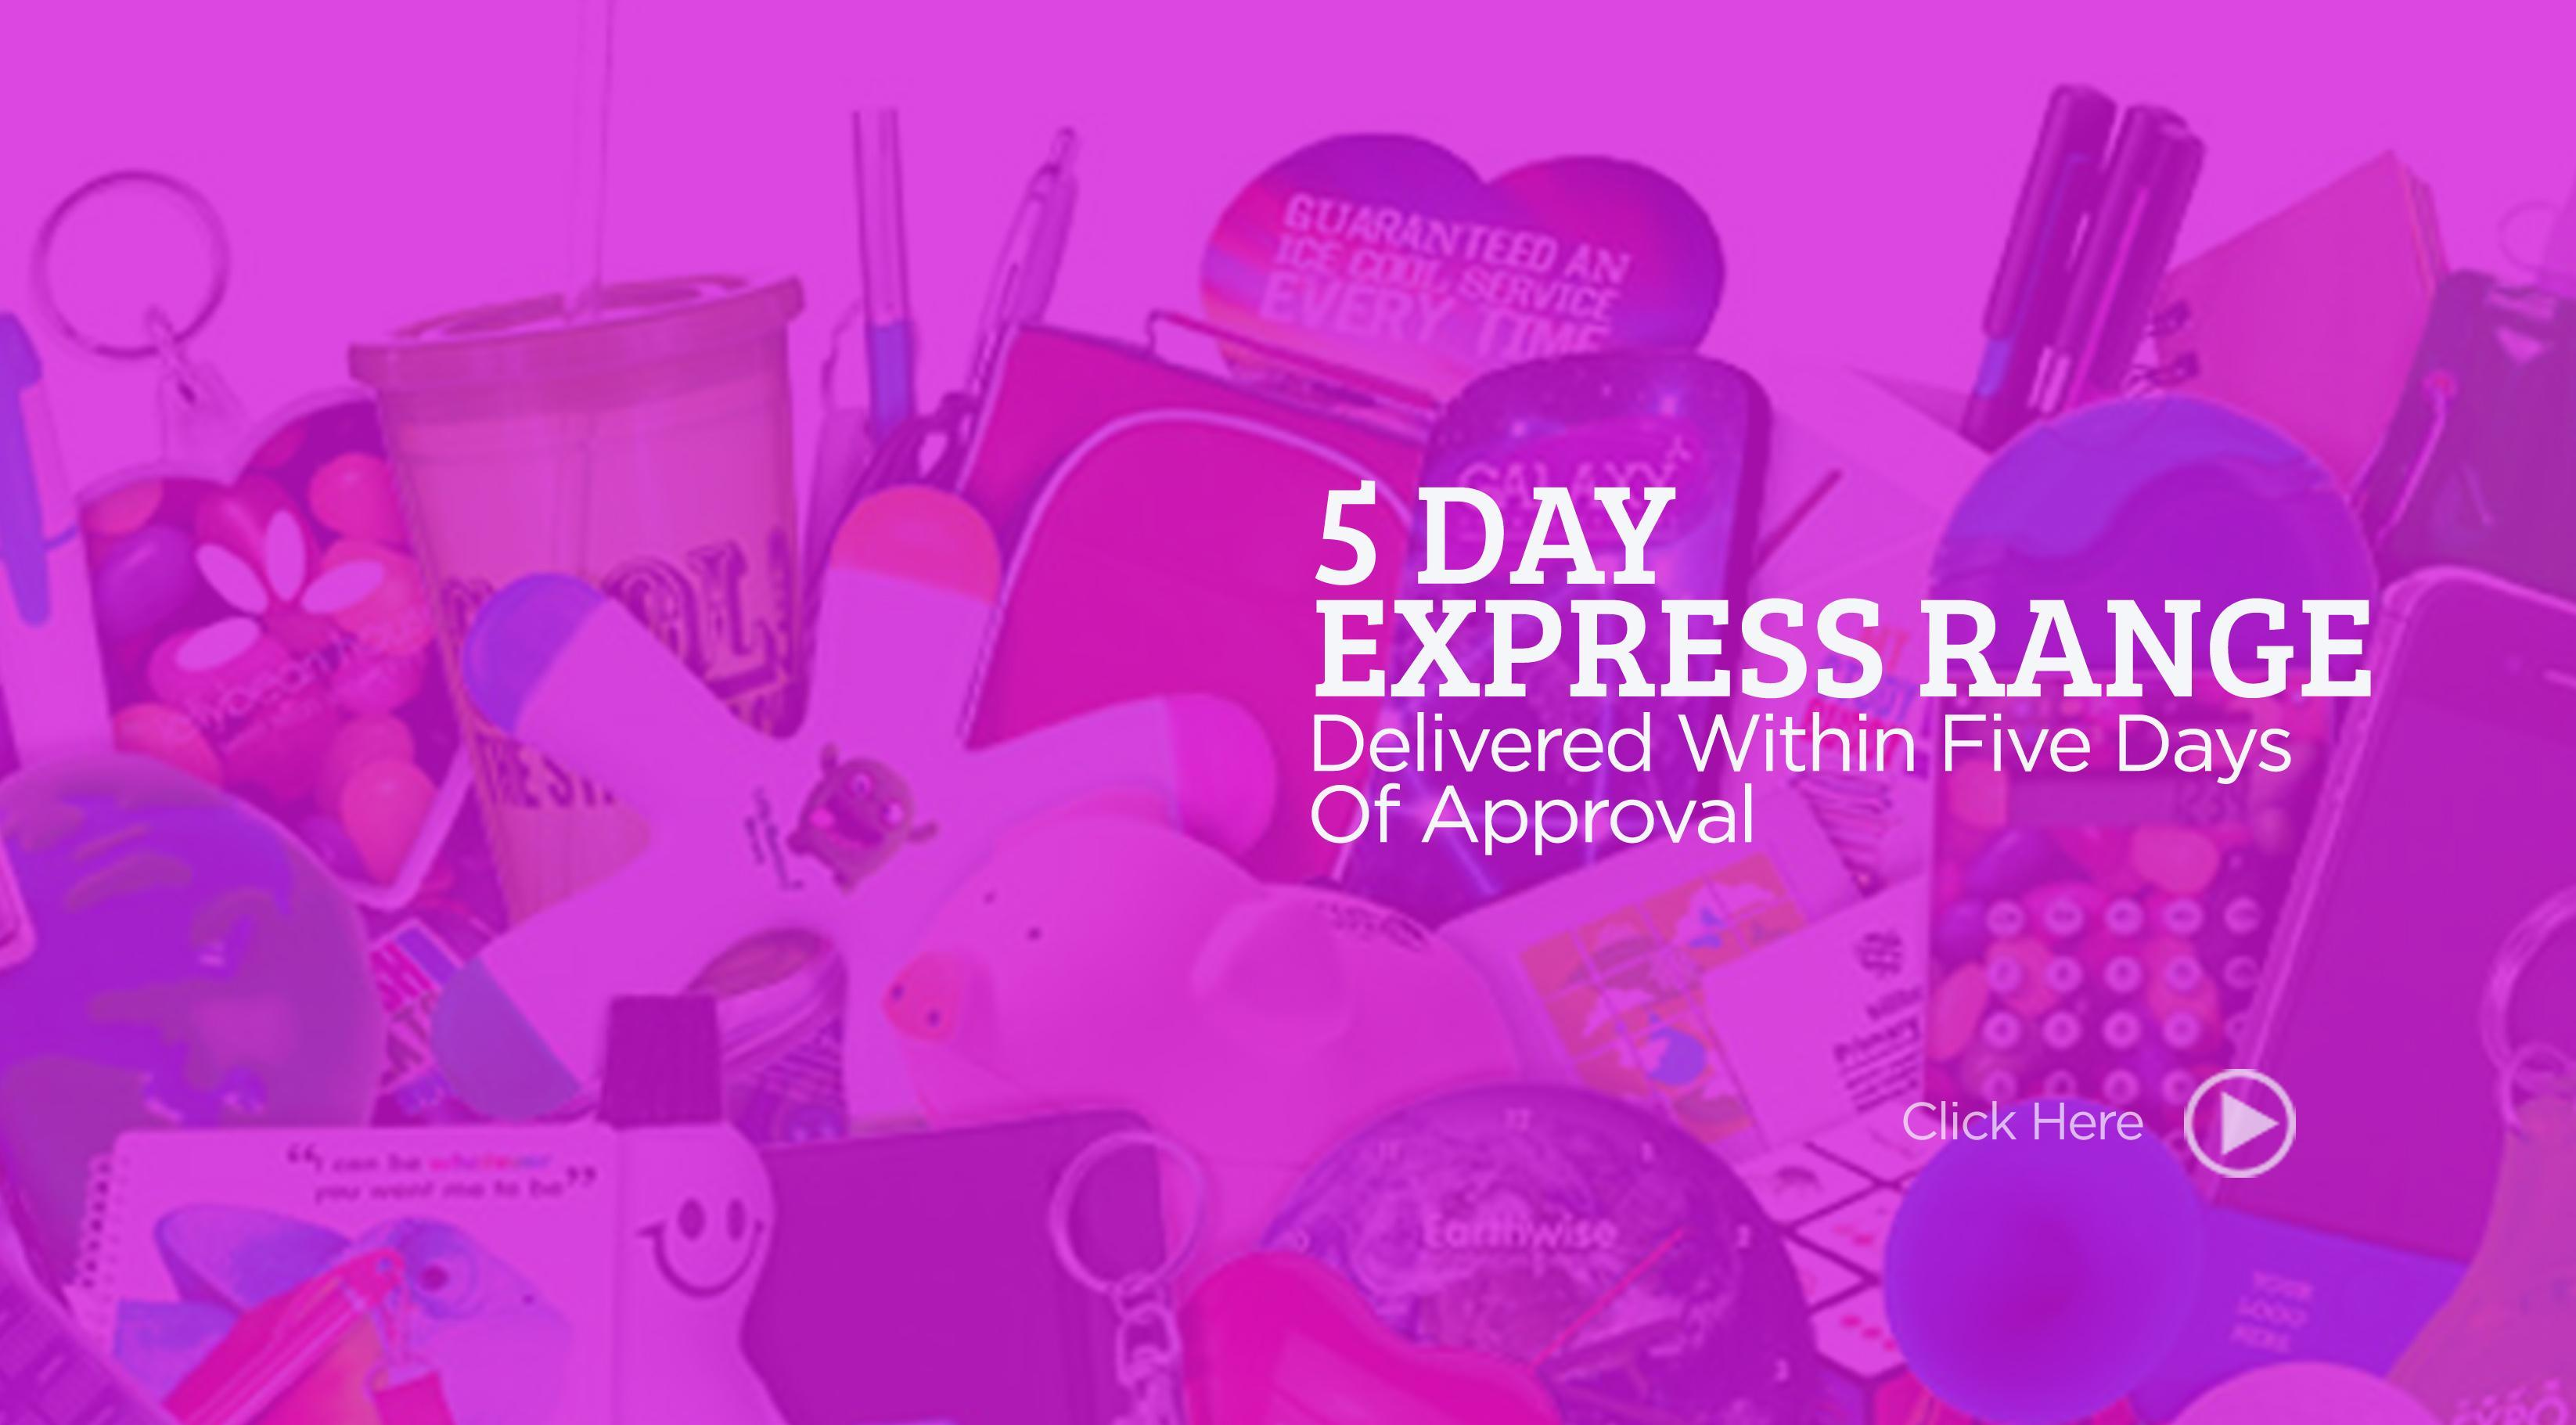 Click here to view our 5 Day express range